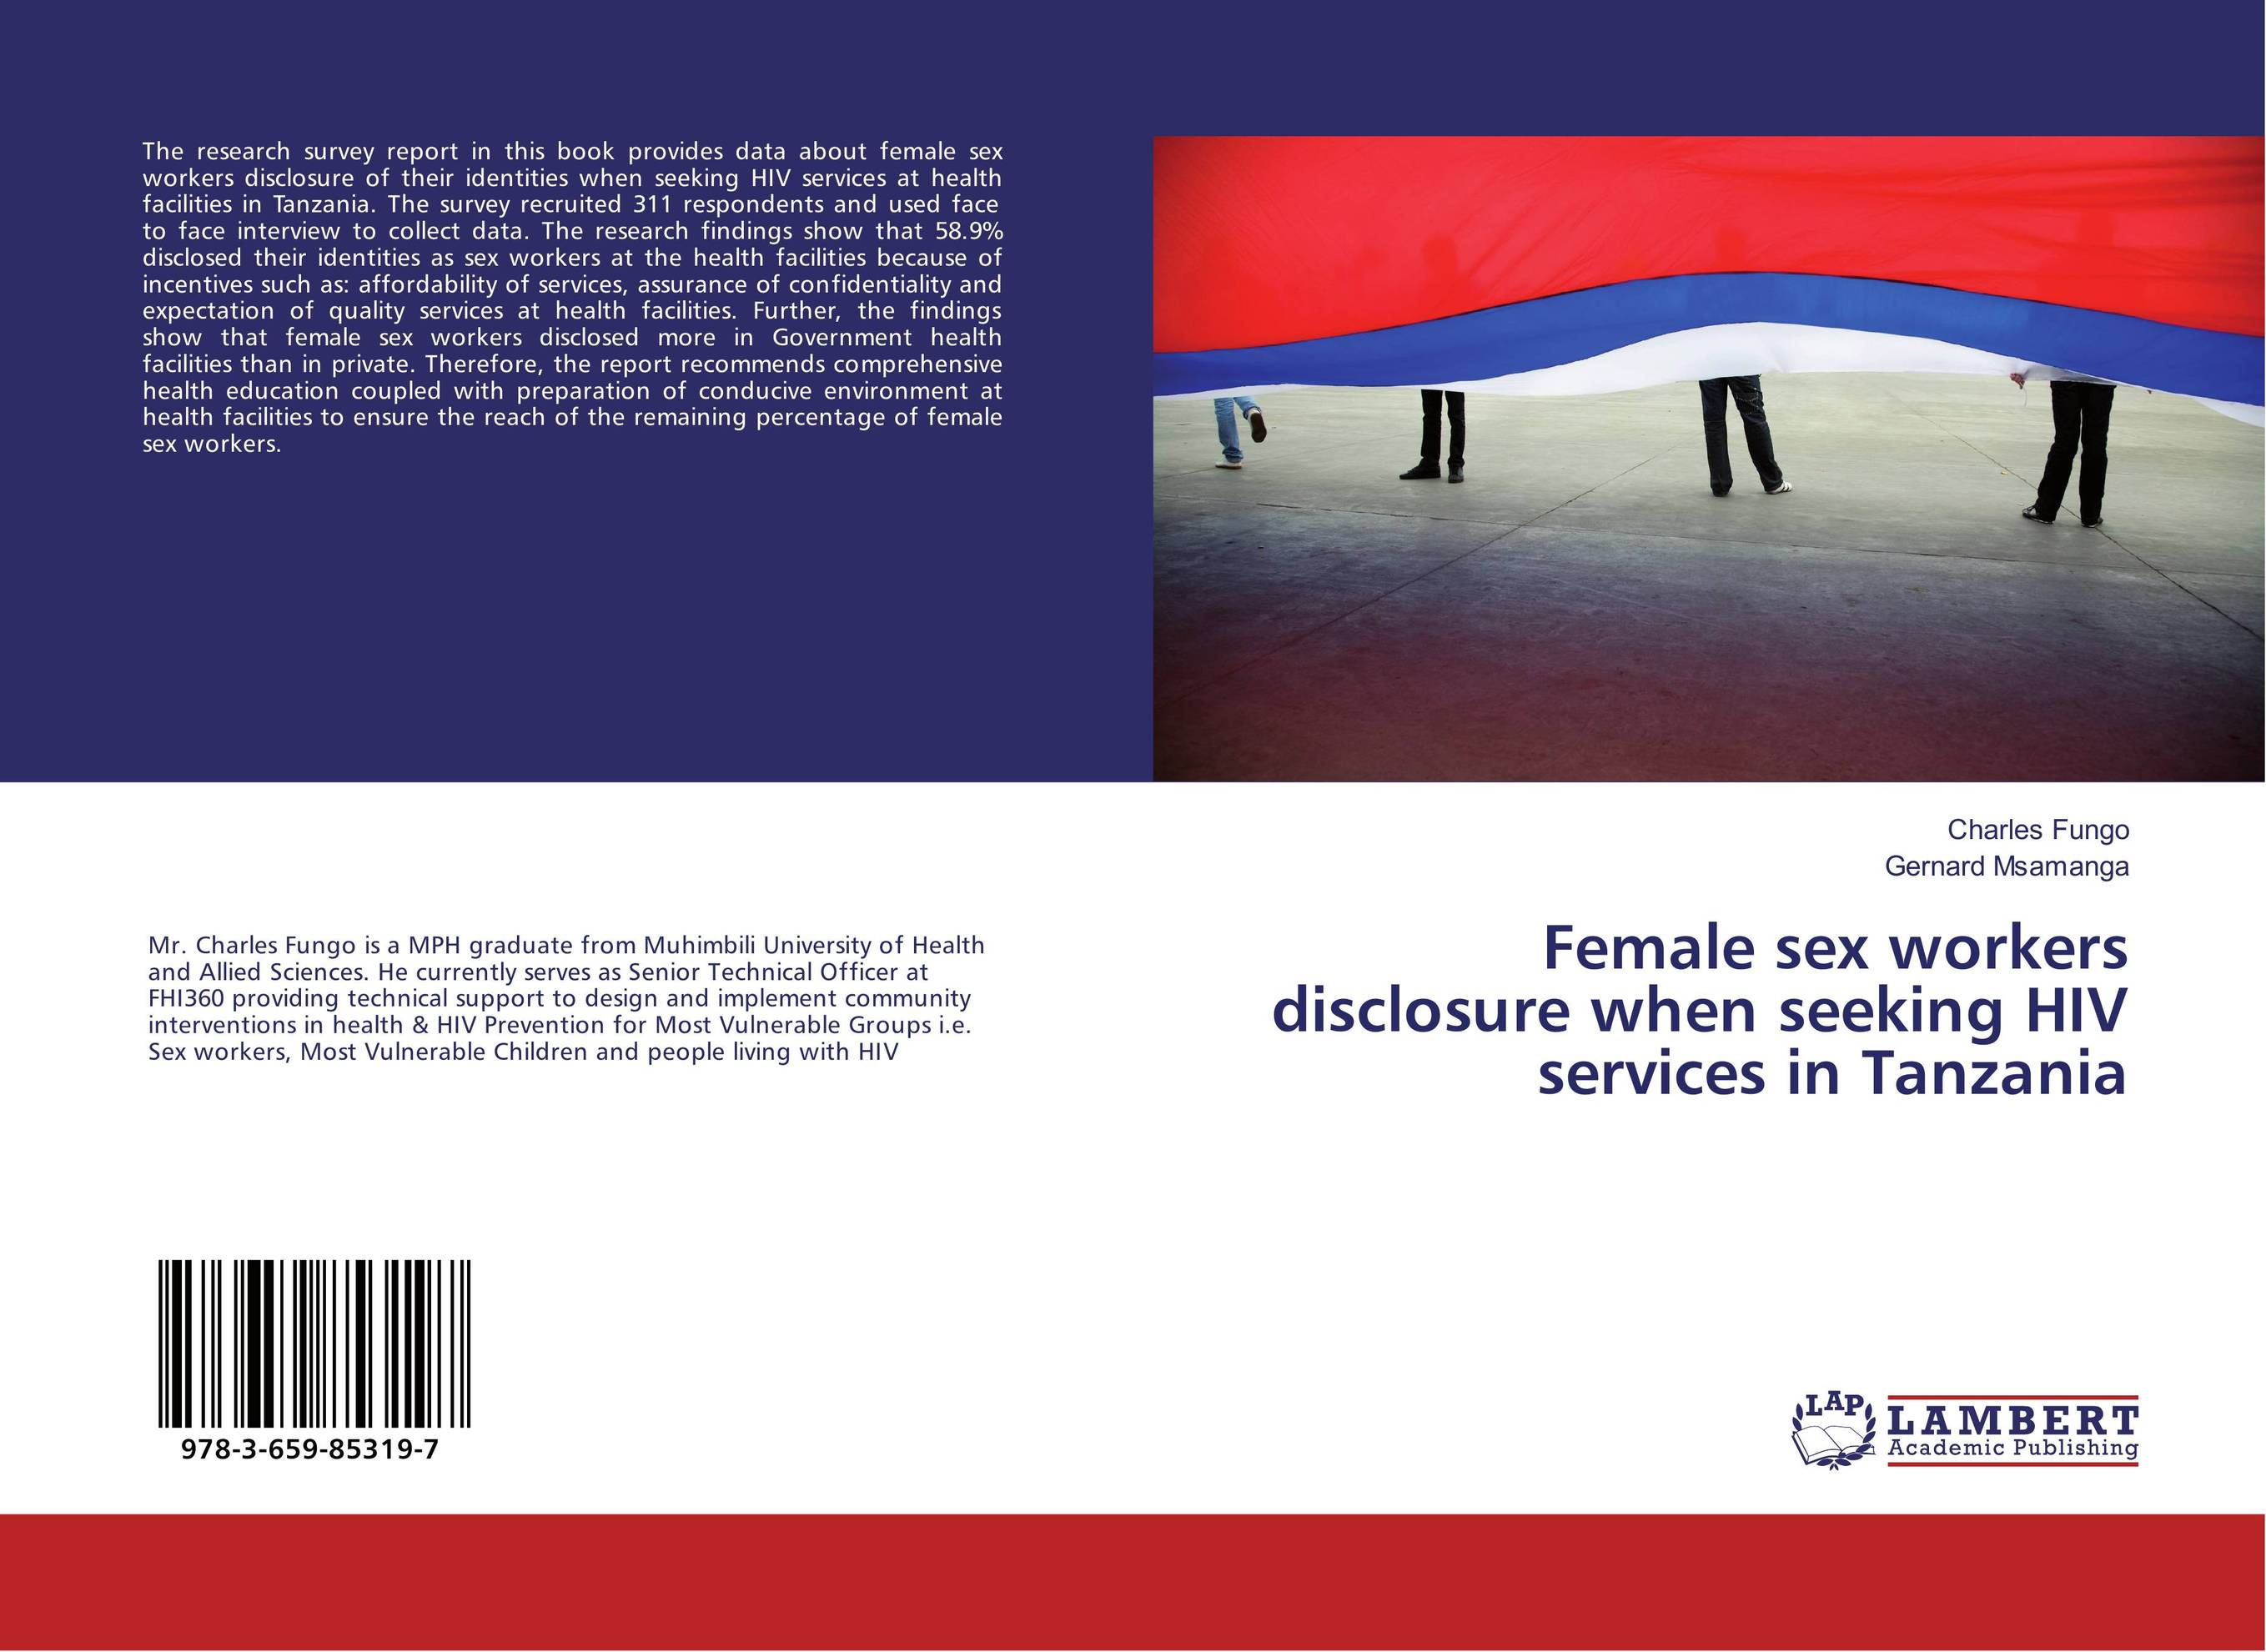 Female sex workers disclosure when seeking HIV services in Tanzania health awareness among continuing education workers